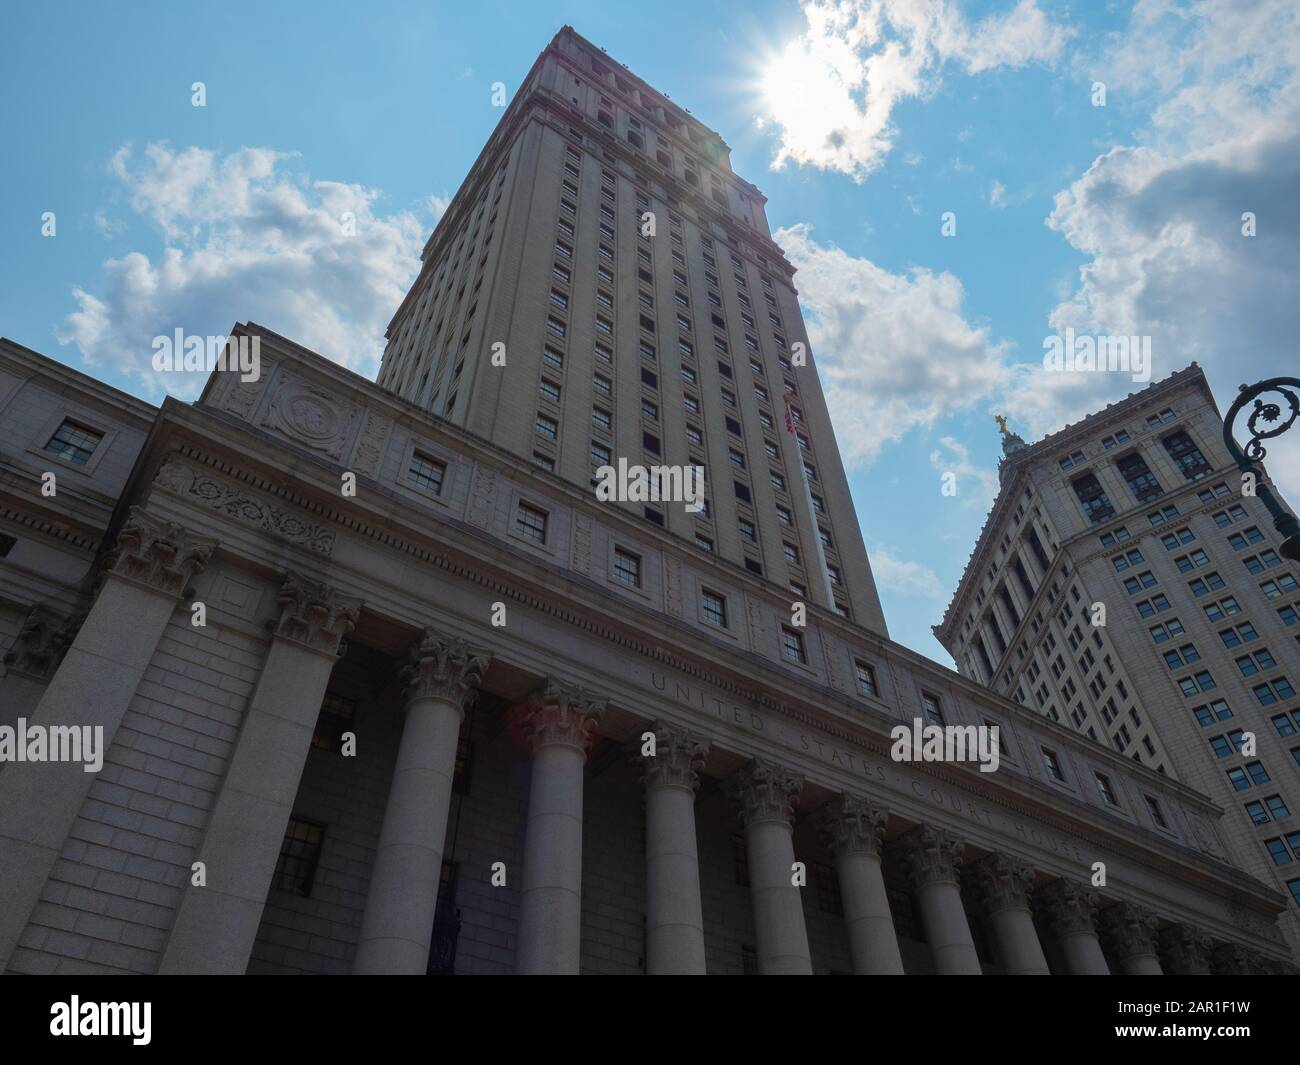 New York, USA - May 31, 2019: Image of the New York county supreme court. Stock Photo